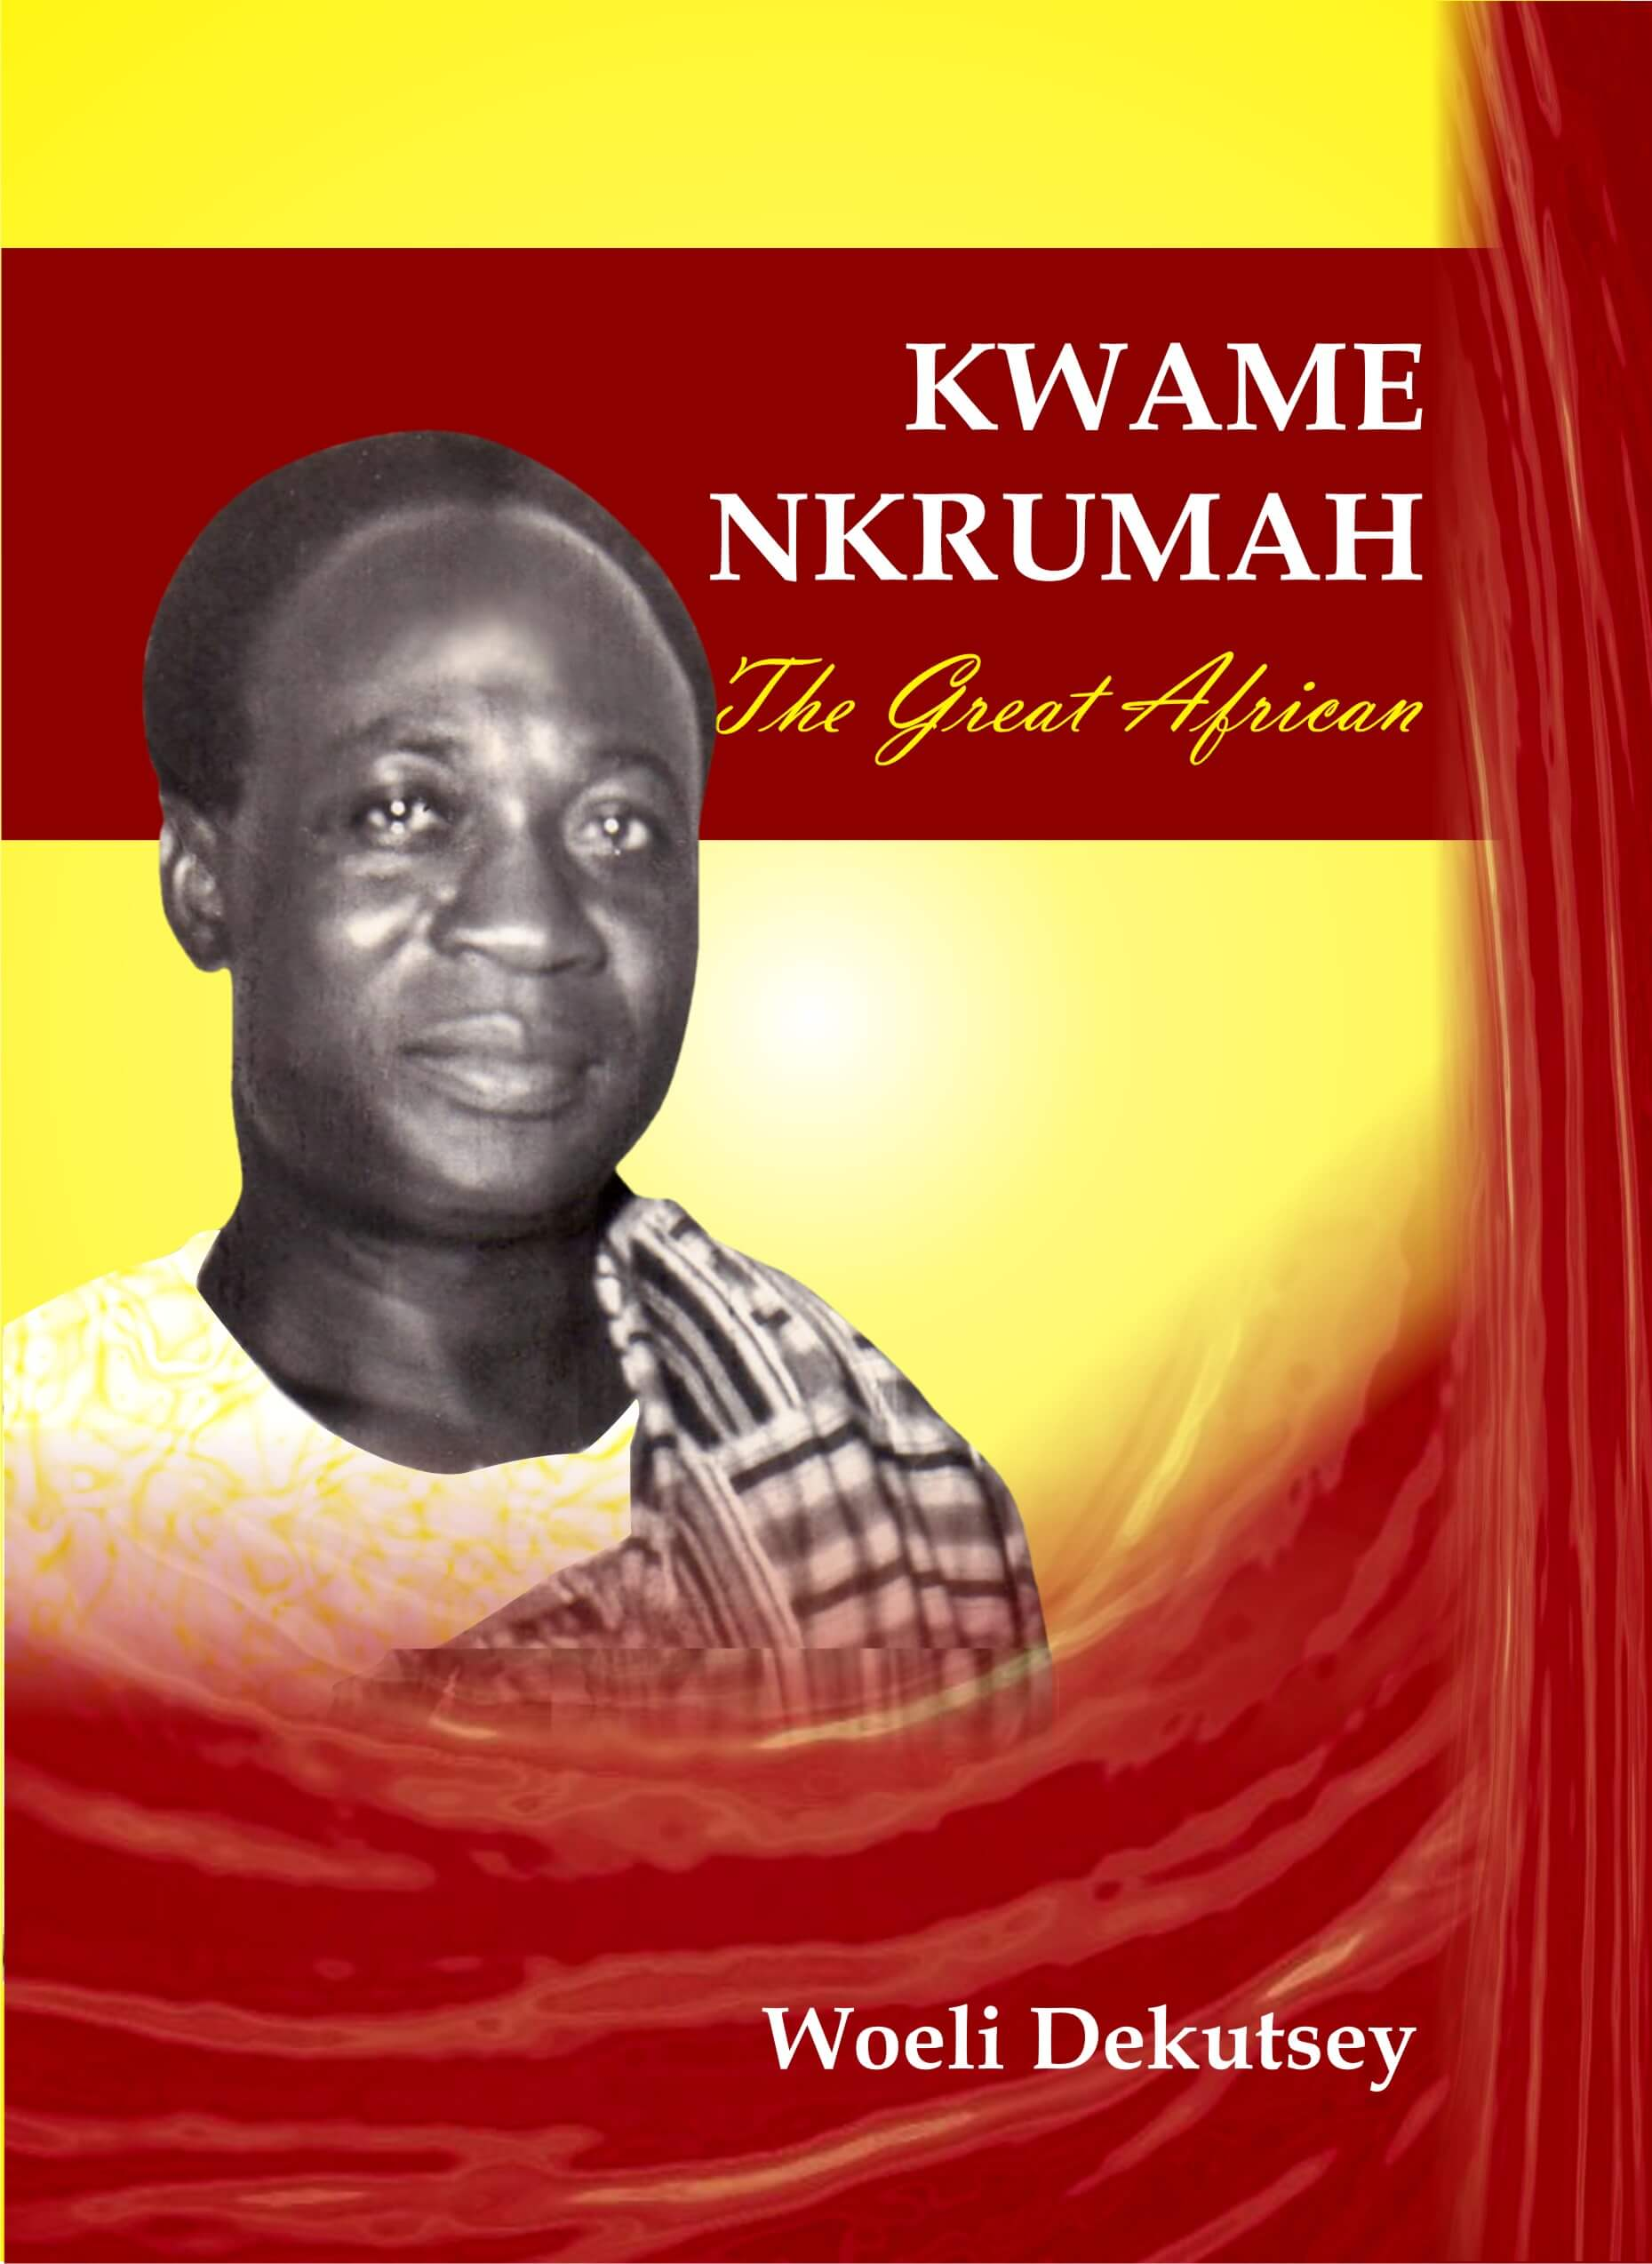 KWAME-NKRUMAH-The-Great-African